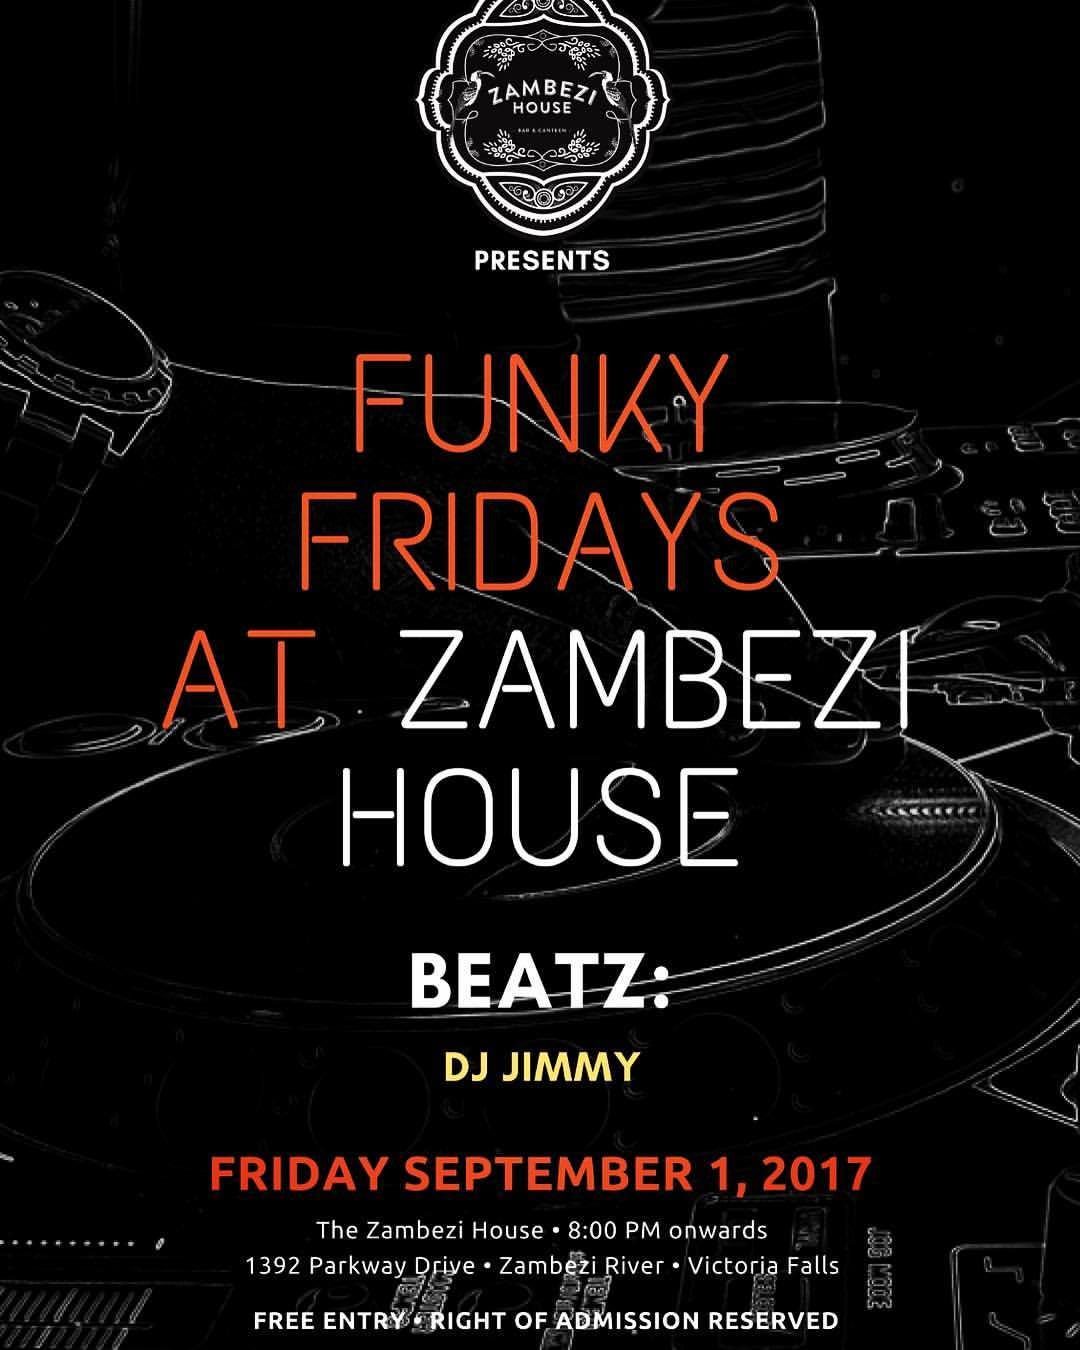 Funky Friday at Zambezi House Sept 1